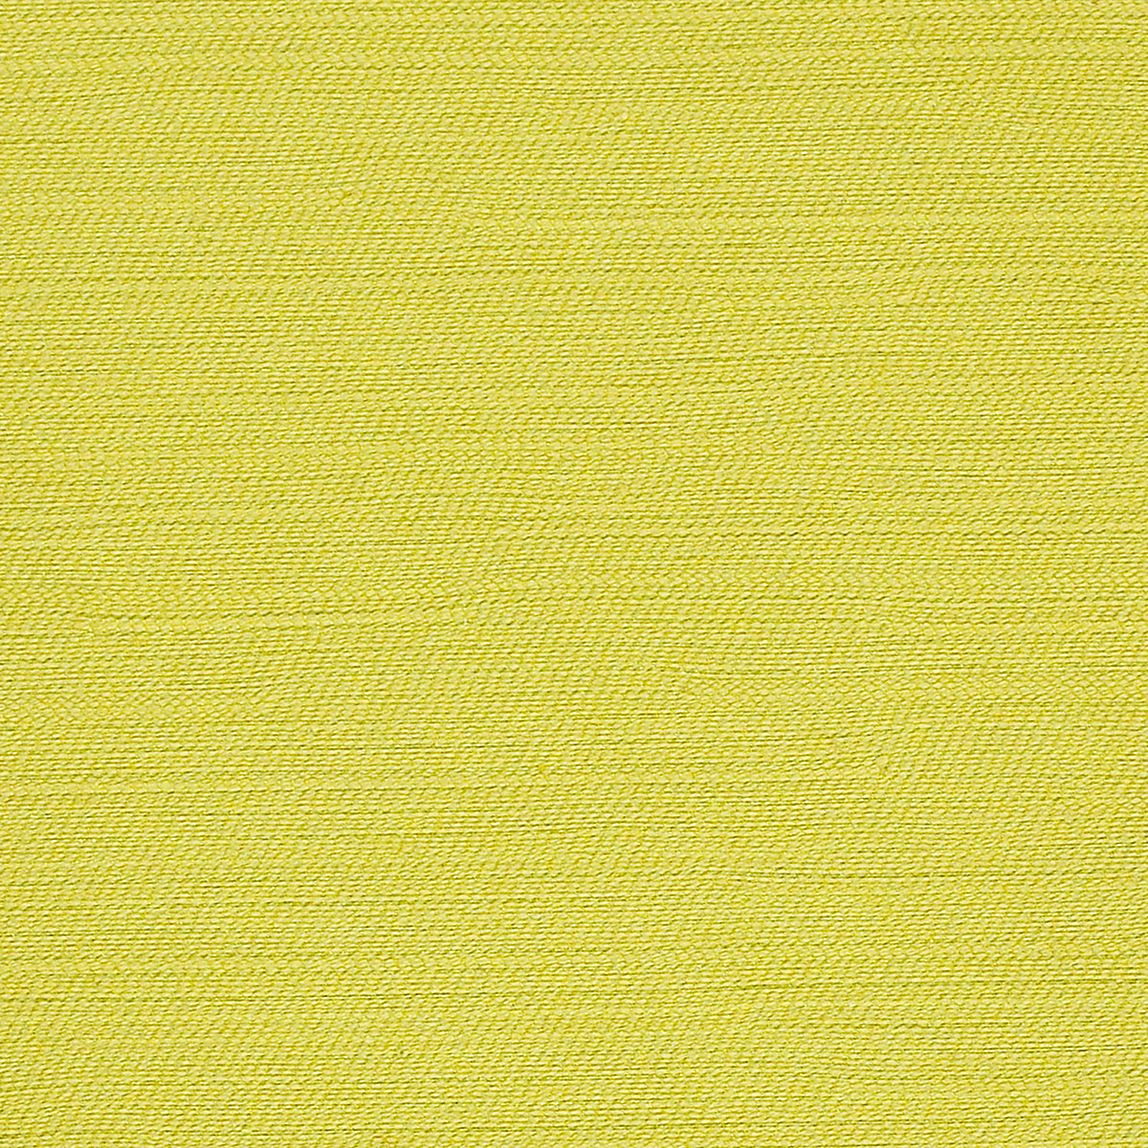 Weaving Palettes Keylime Swatch